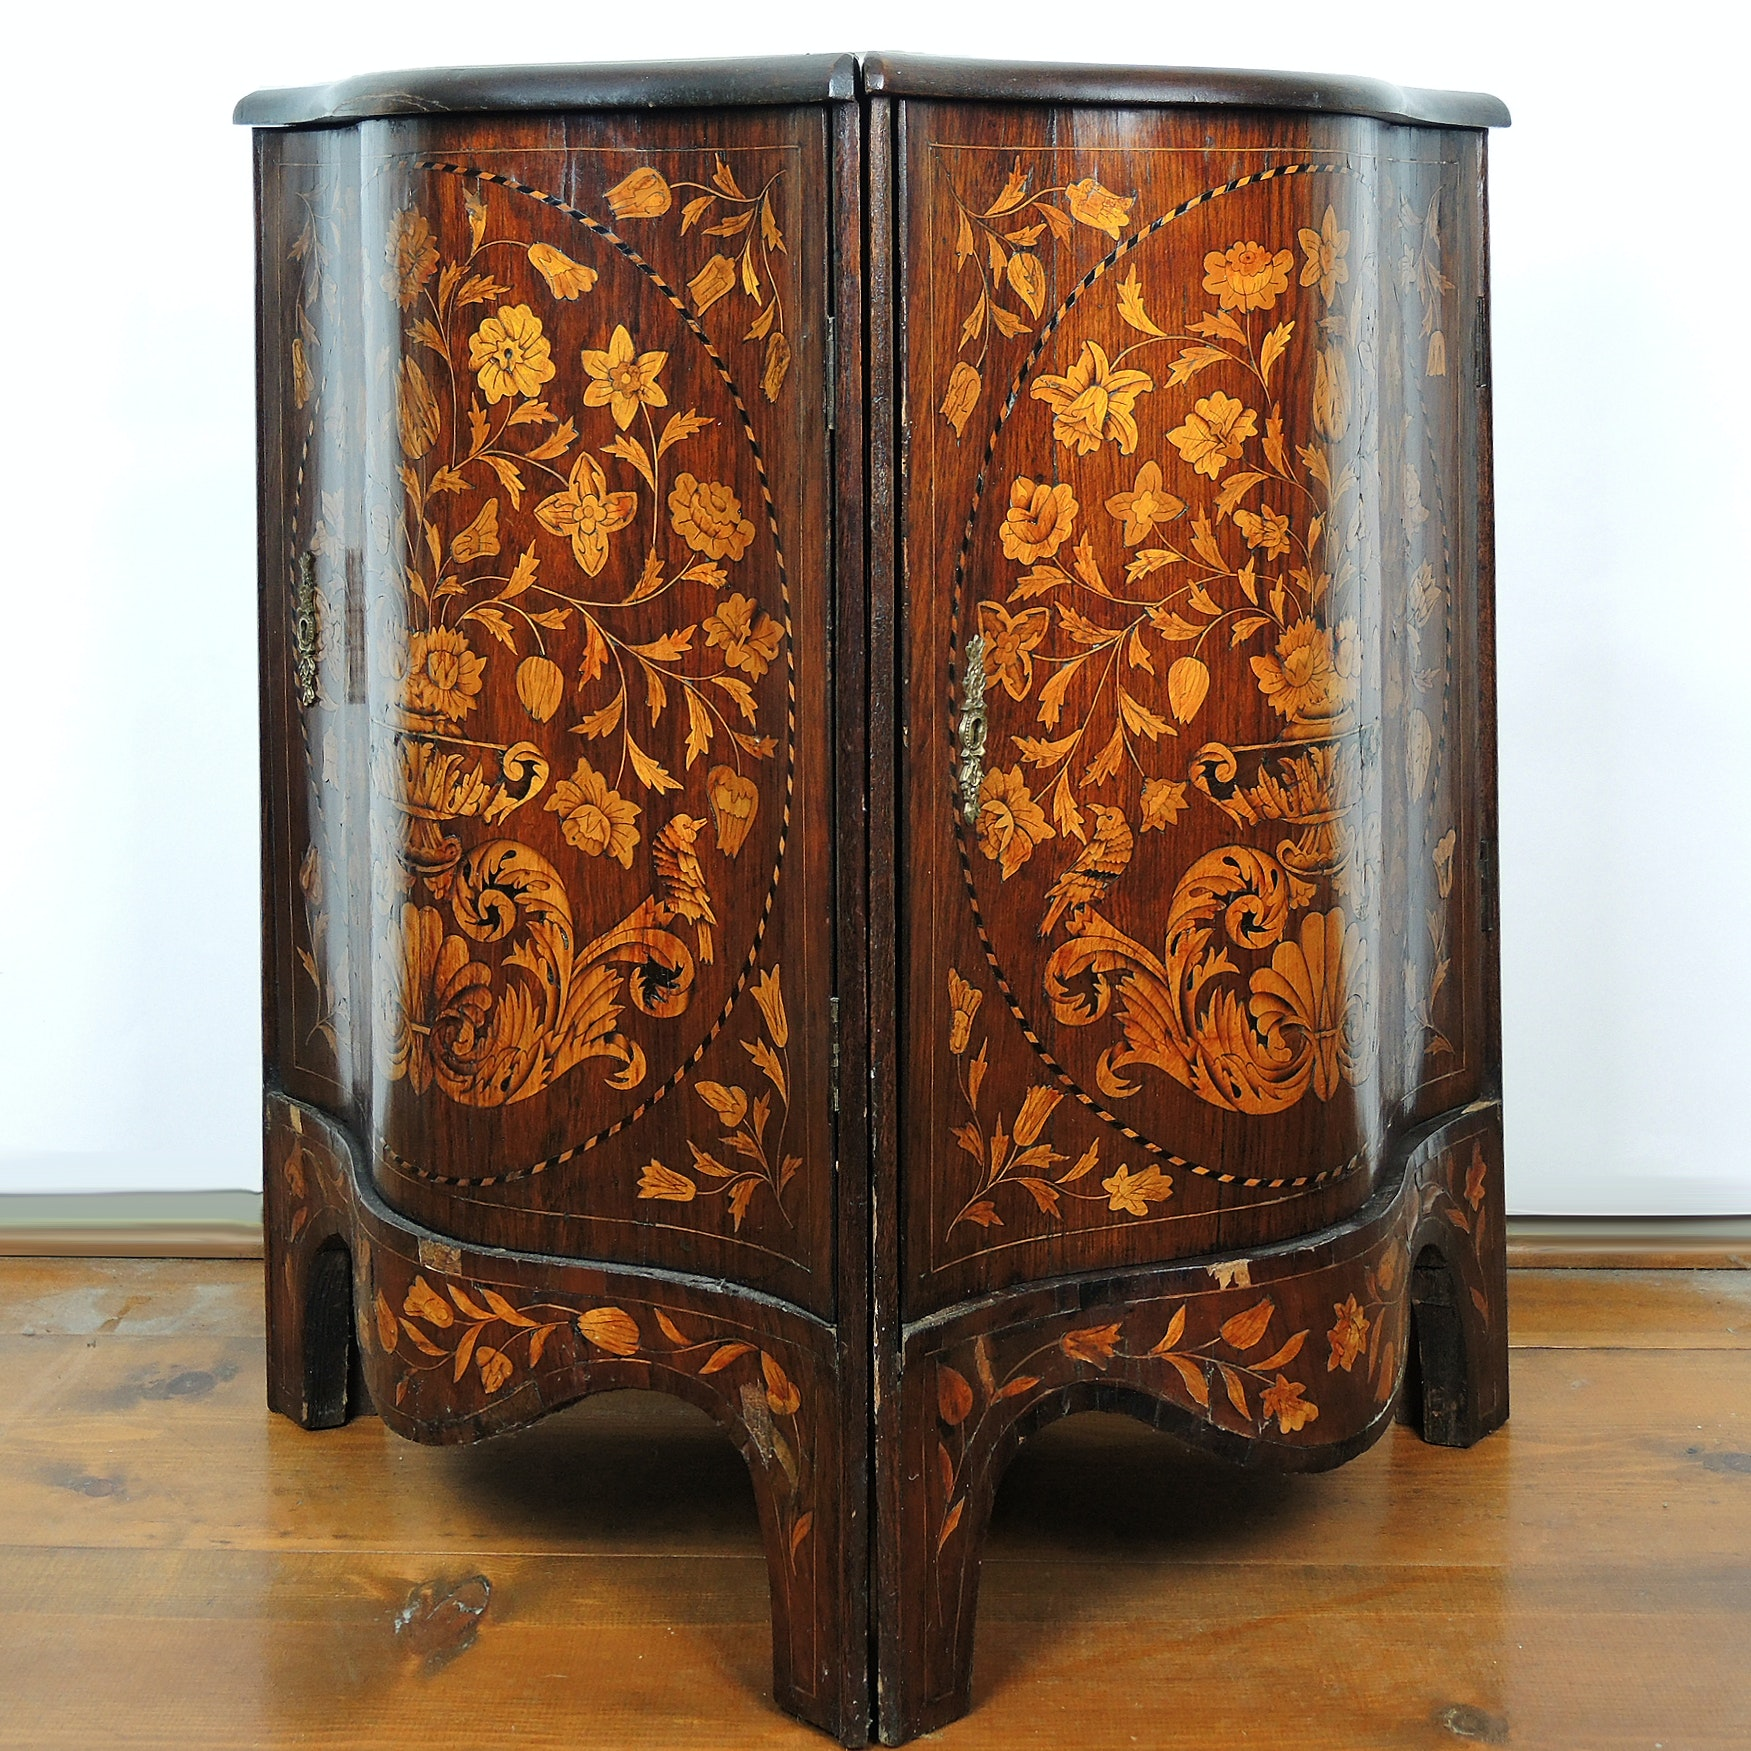 18th Century Dutch Marquetry Rosewood Corner Cabinets Floral and Bird Motif